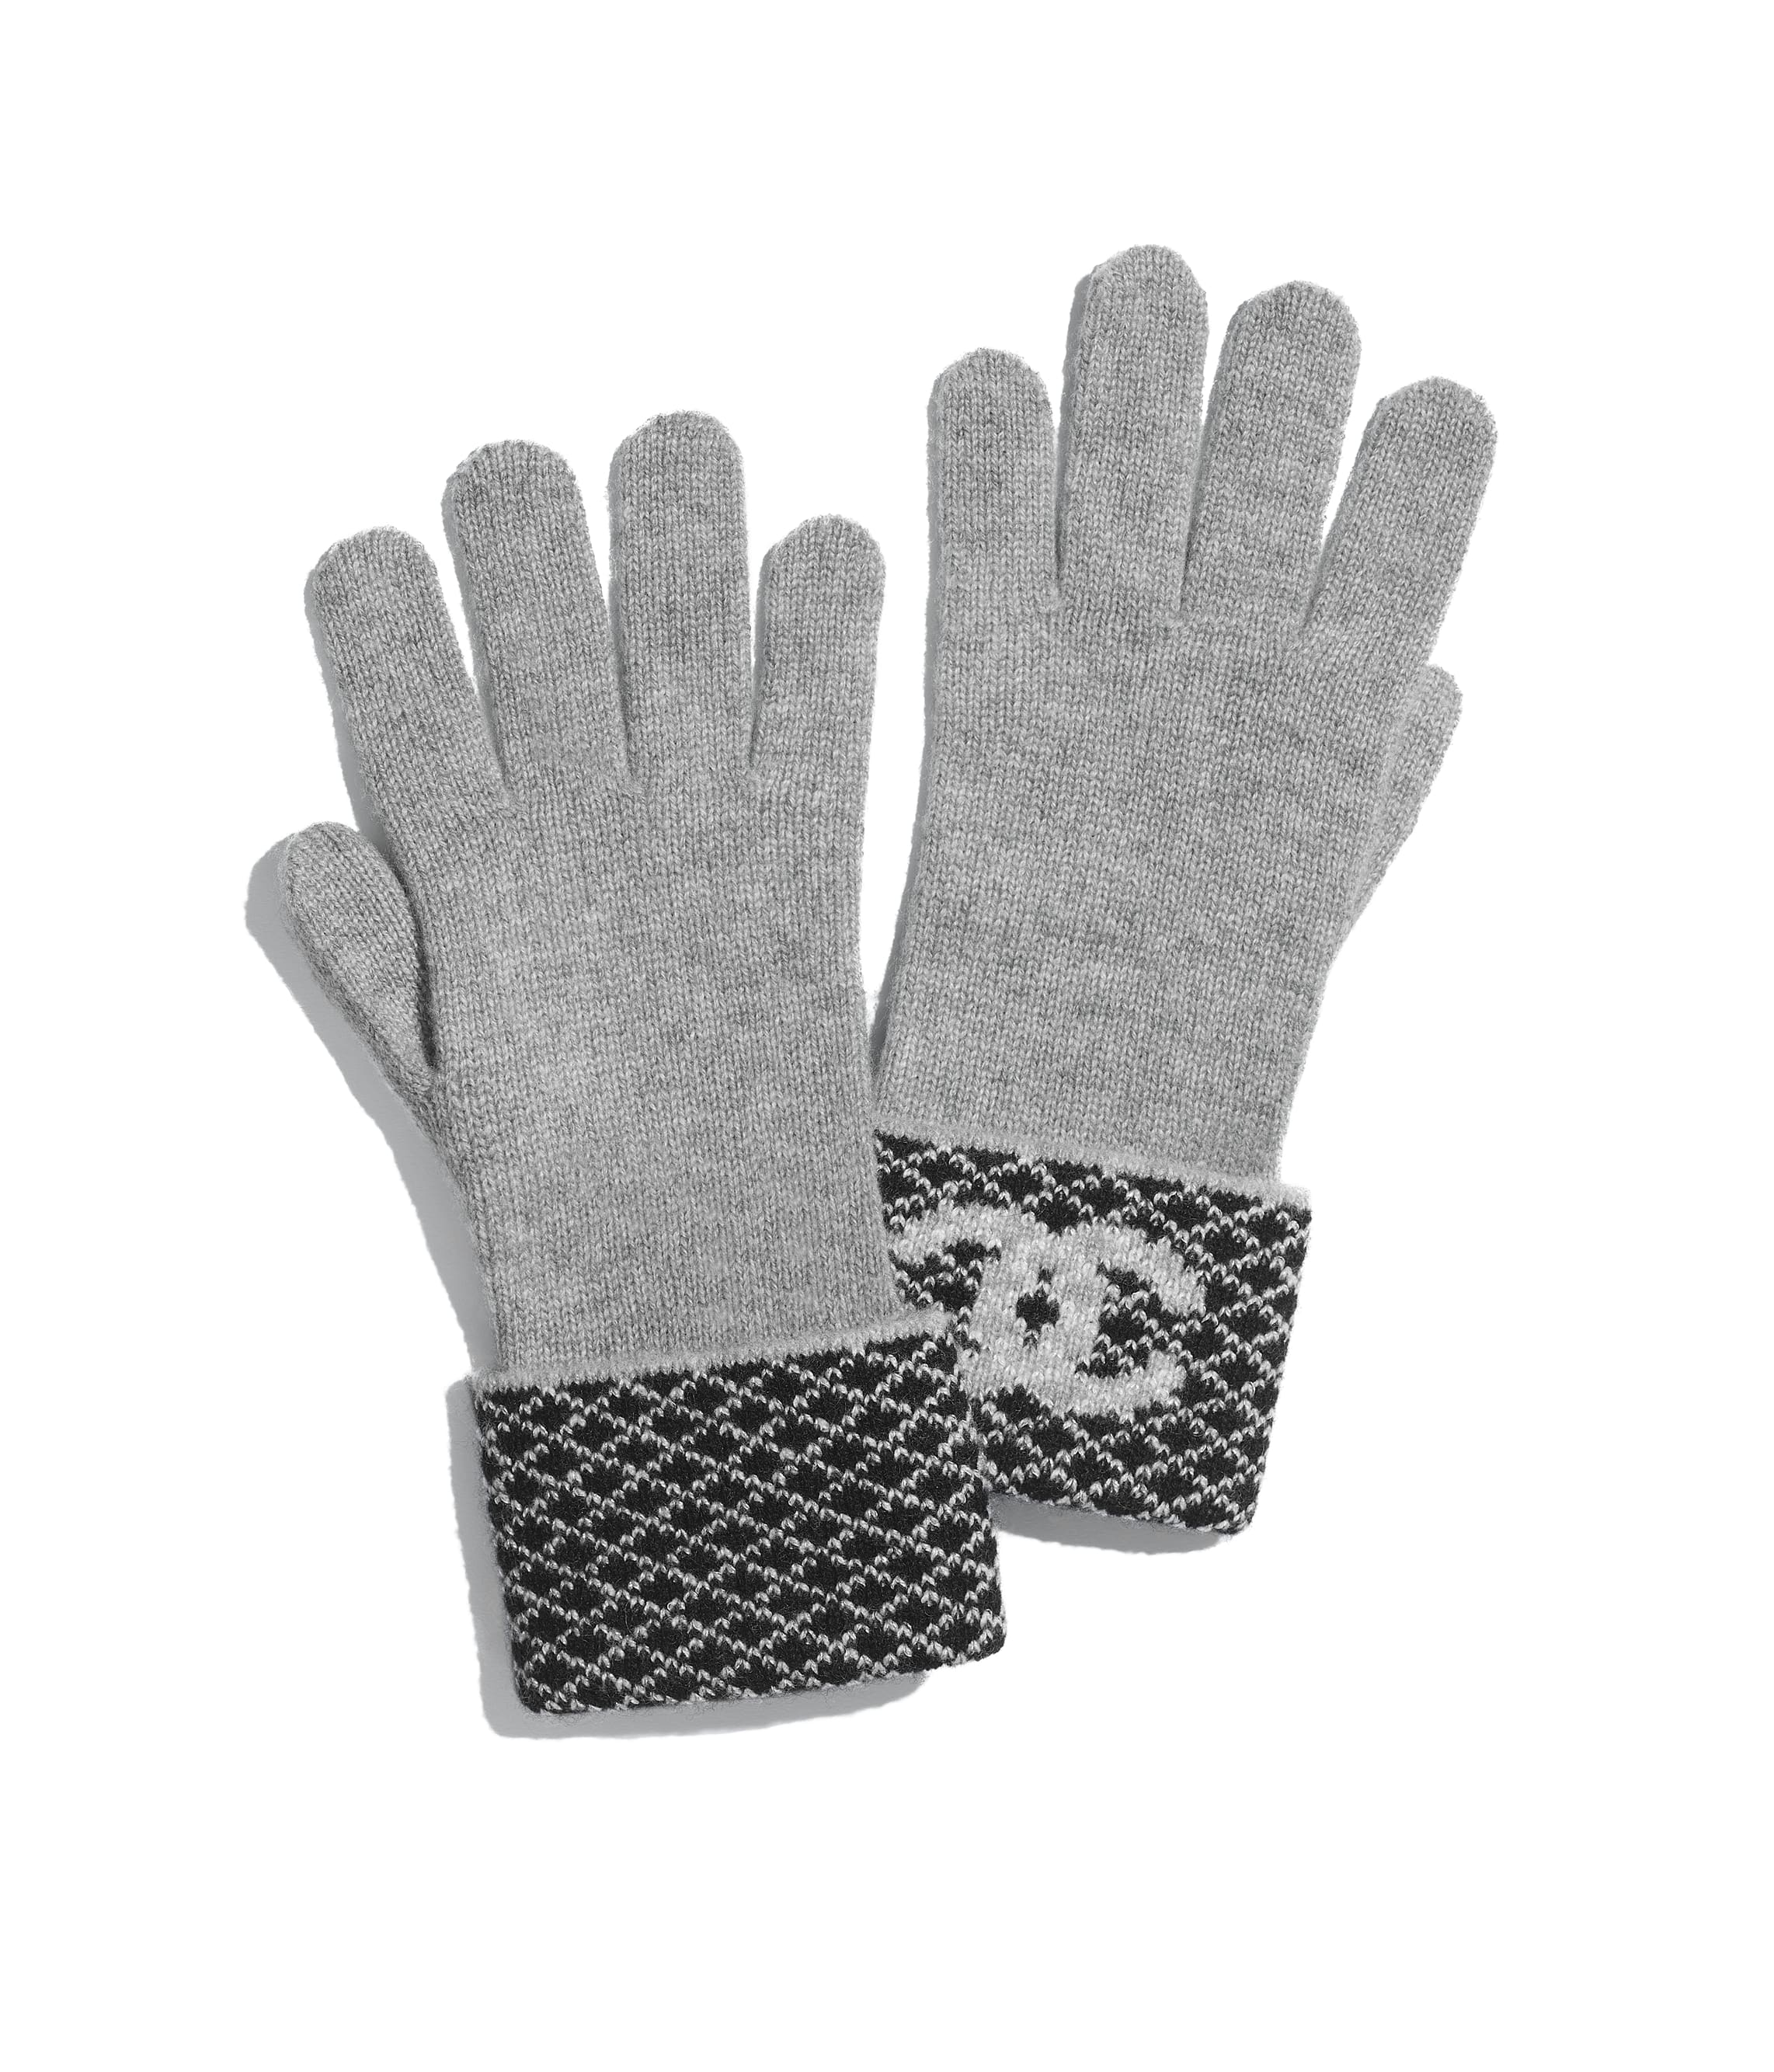 0eacb942ab Gloves - Other Accessories - CHANEL